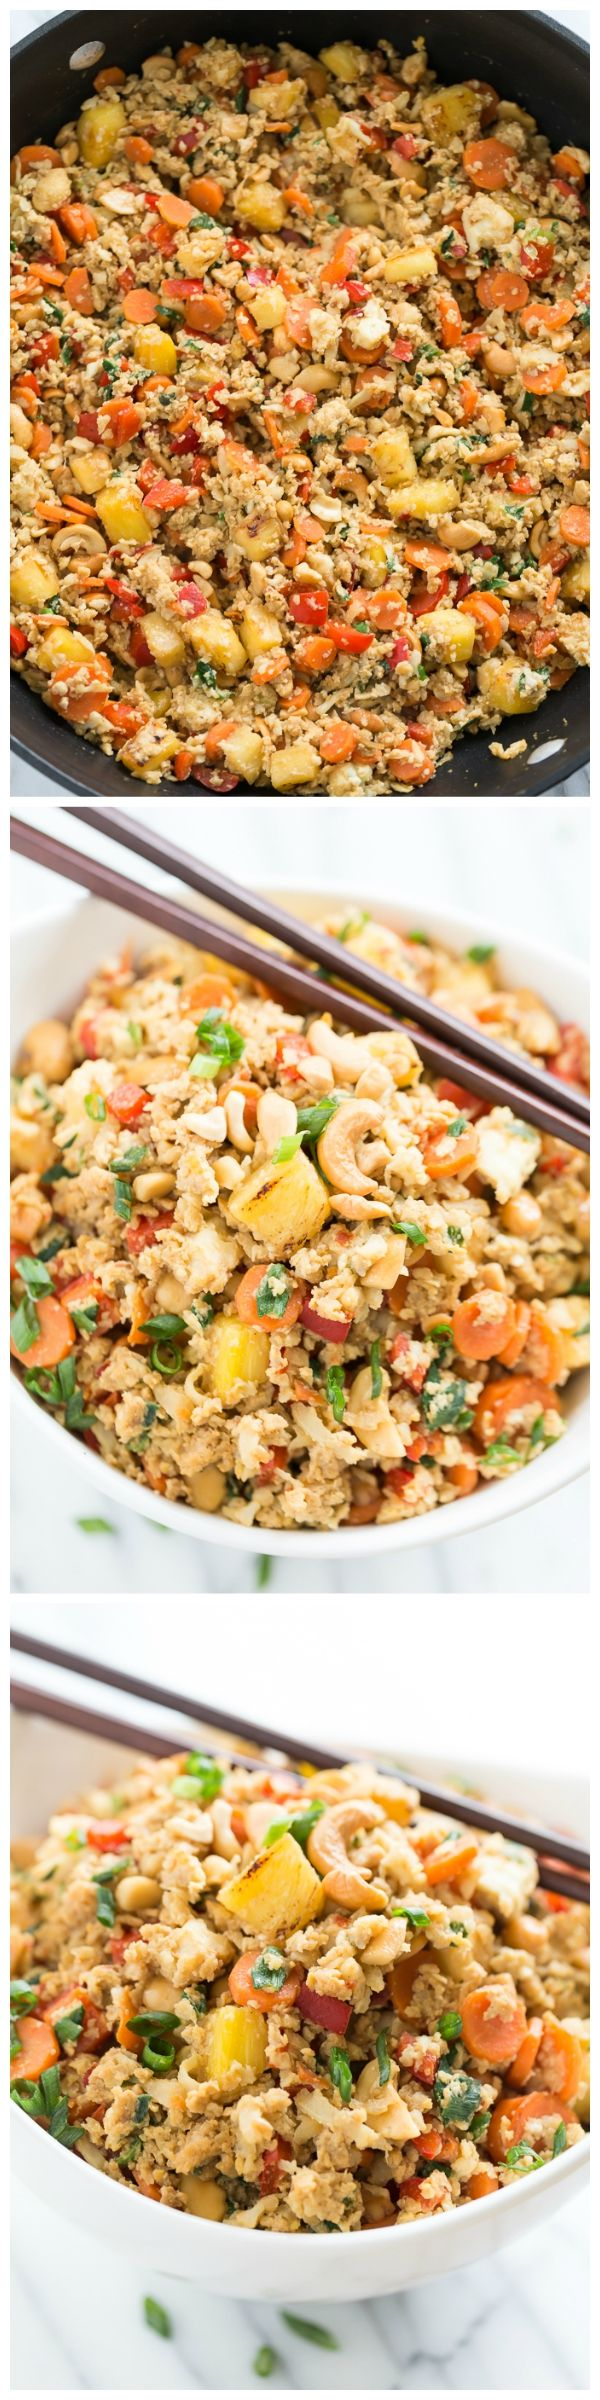 I'm head over heels for this Paleo Pineapple Fried 'Rice' - it's even delicious cold straight out of the fridge!